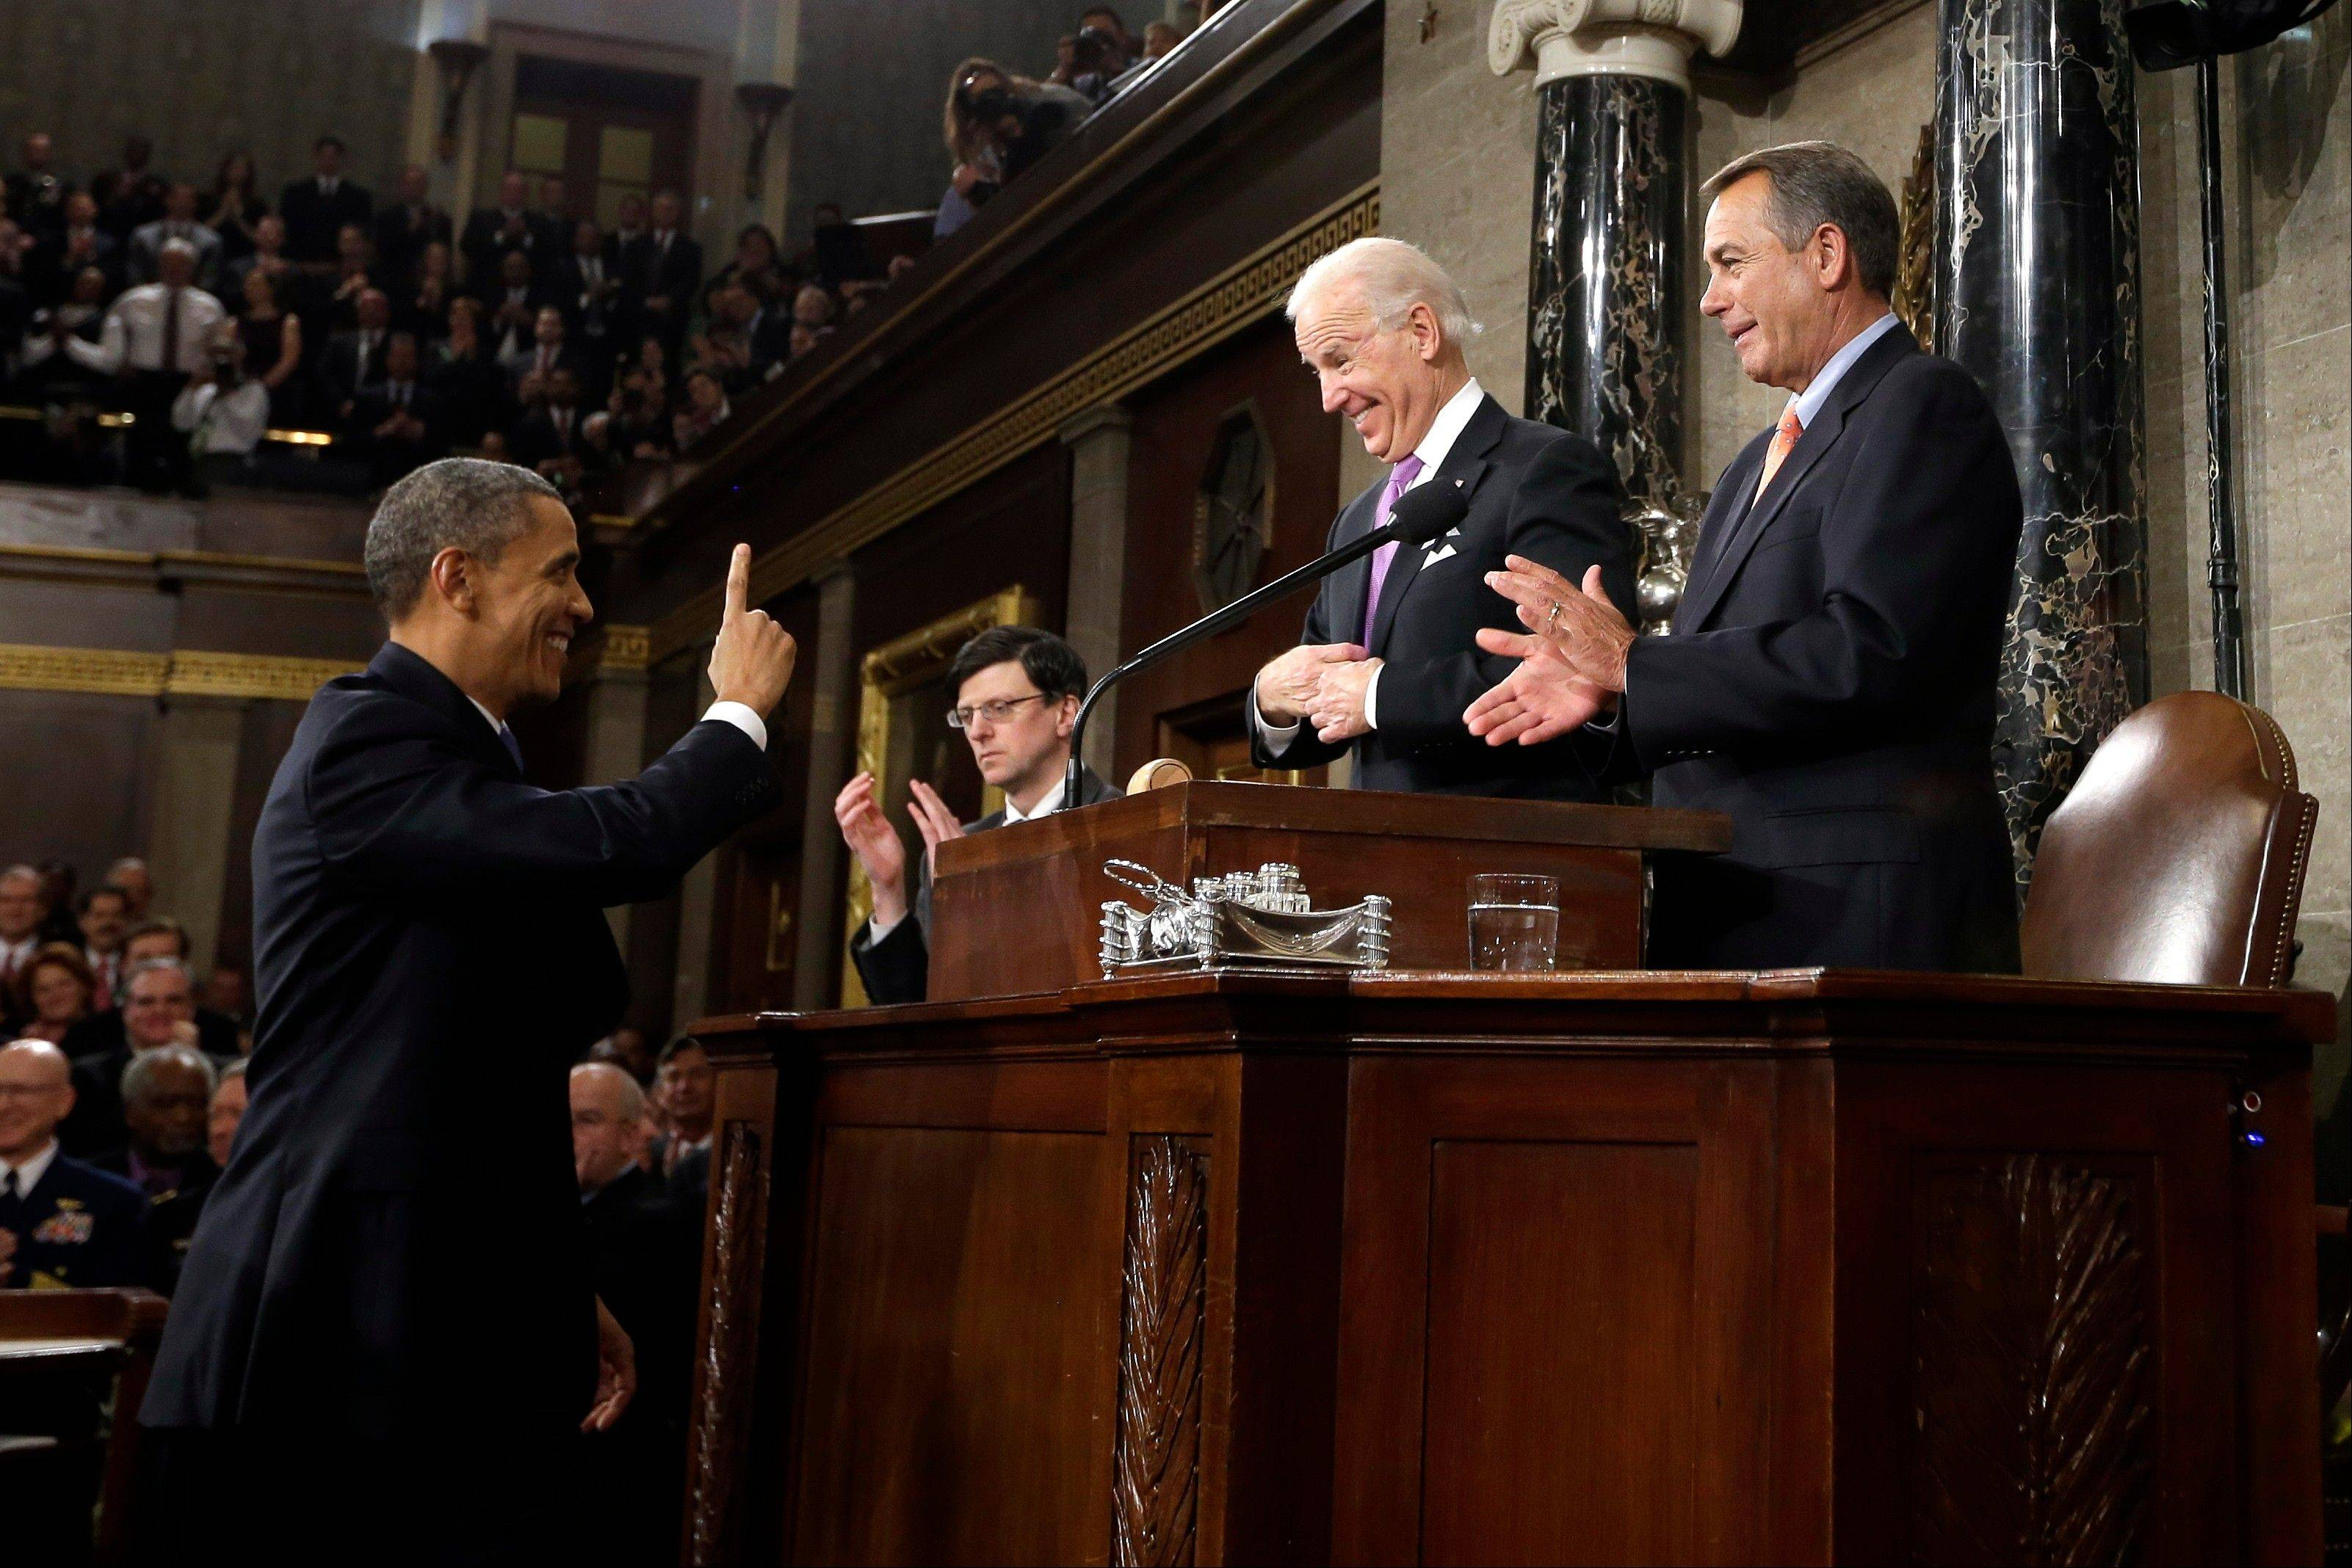 President Barack Obama gestures toward Vice President Joe Biden and House Speaker John Boehner of Ohio before giving his State of the Union address during a